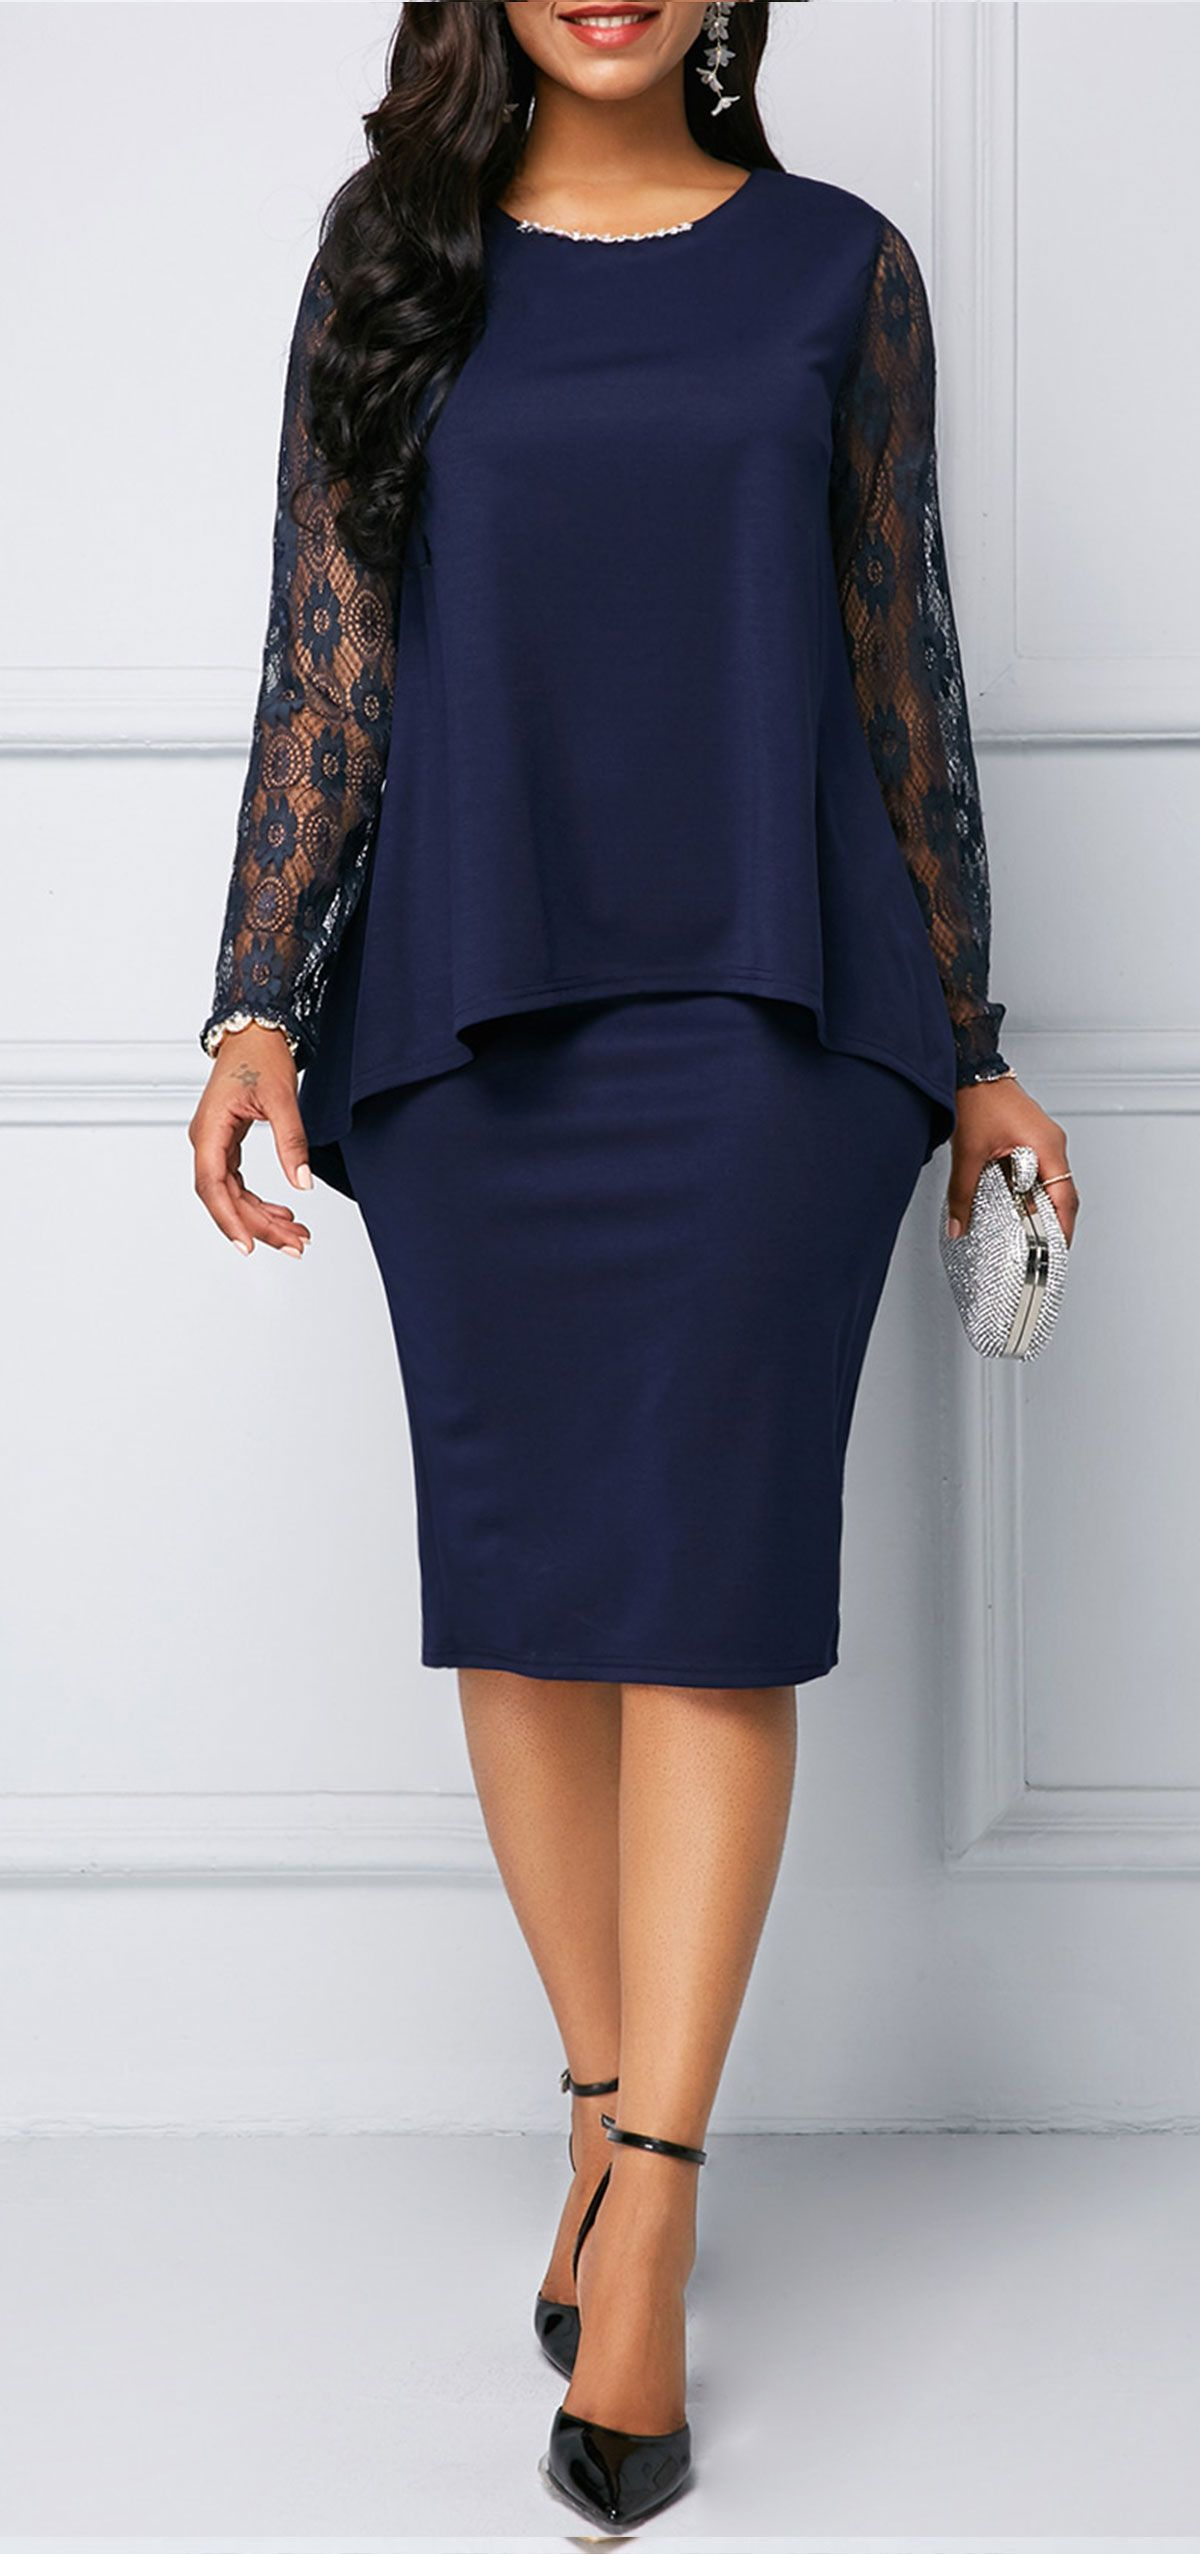 e7649feeaf Lace Panel Bowknot Back Navy Blue Overlay Embellished #Dress. Shop ...